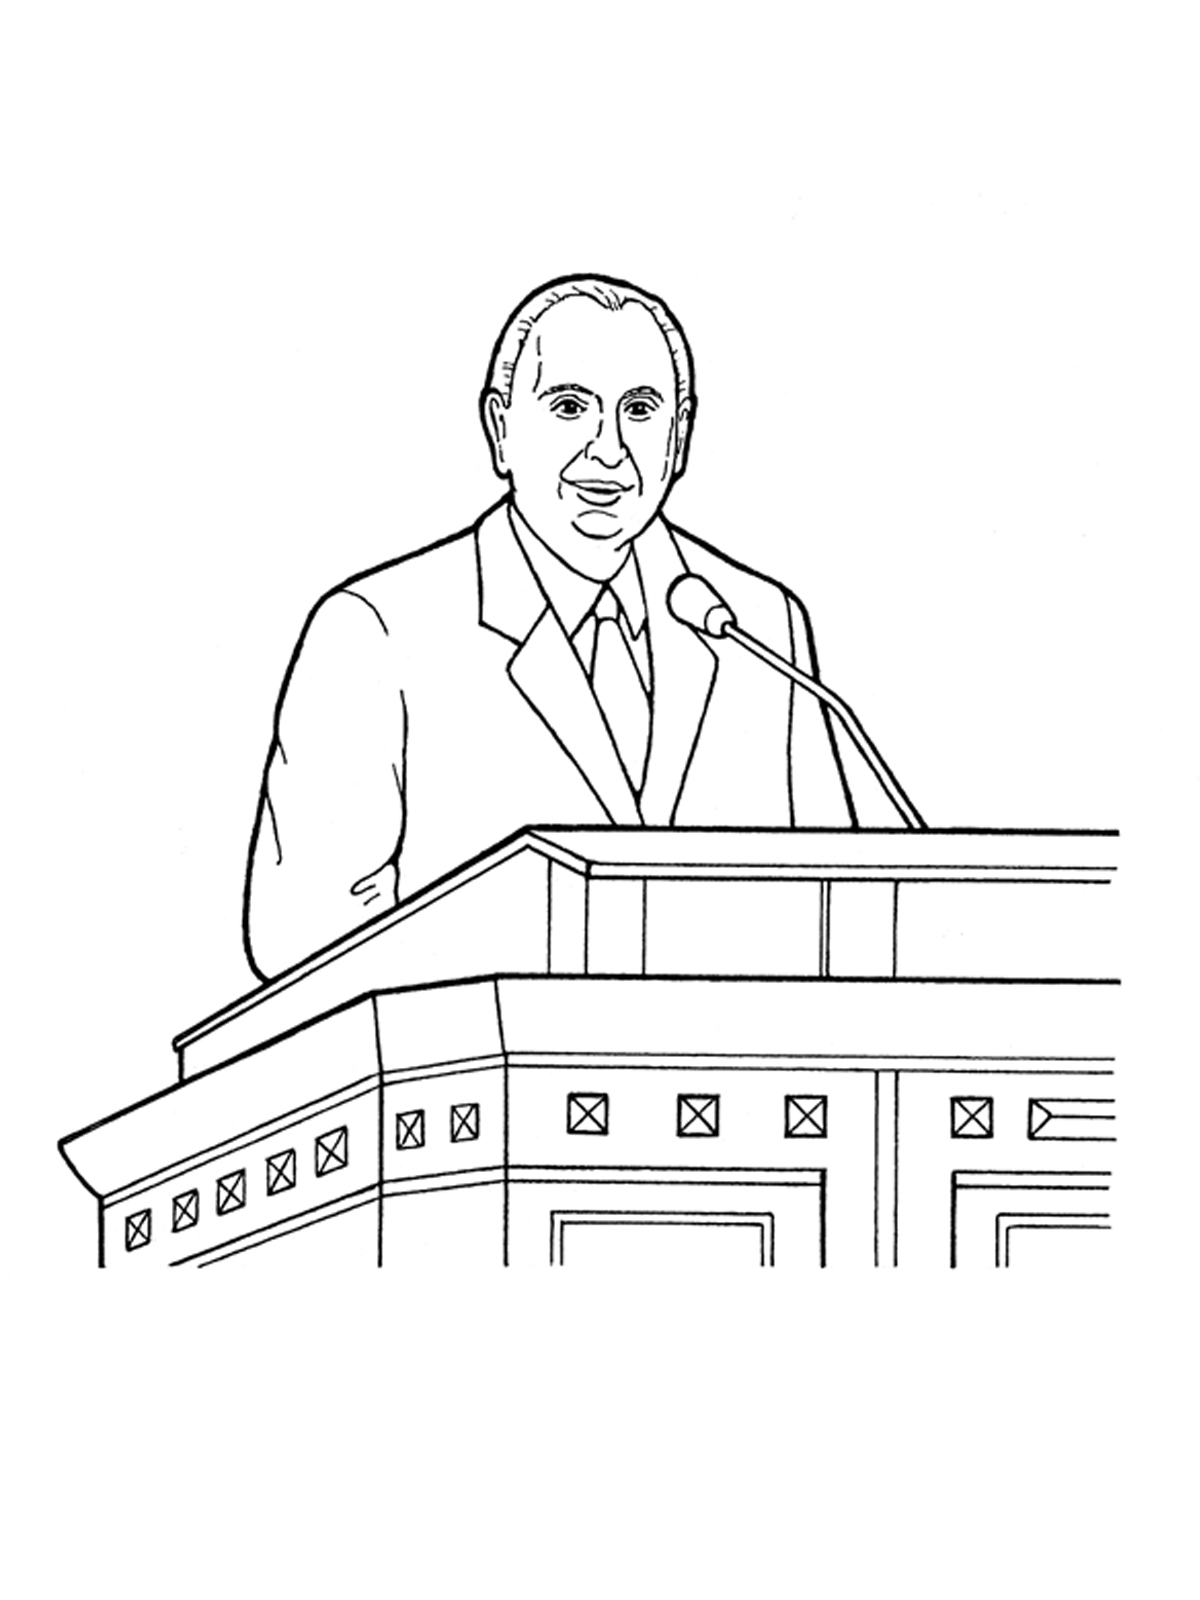 Lds black and white clipart of prophets vector black and white Thomas S. Monson Speaking at General Conference vector black and white